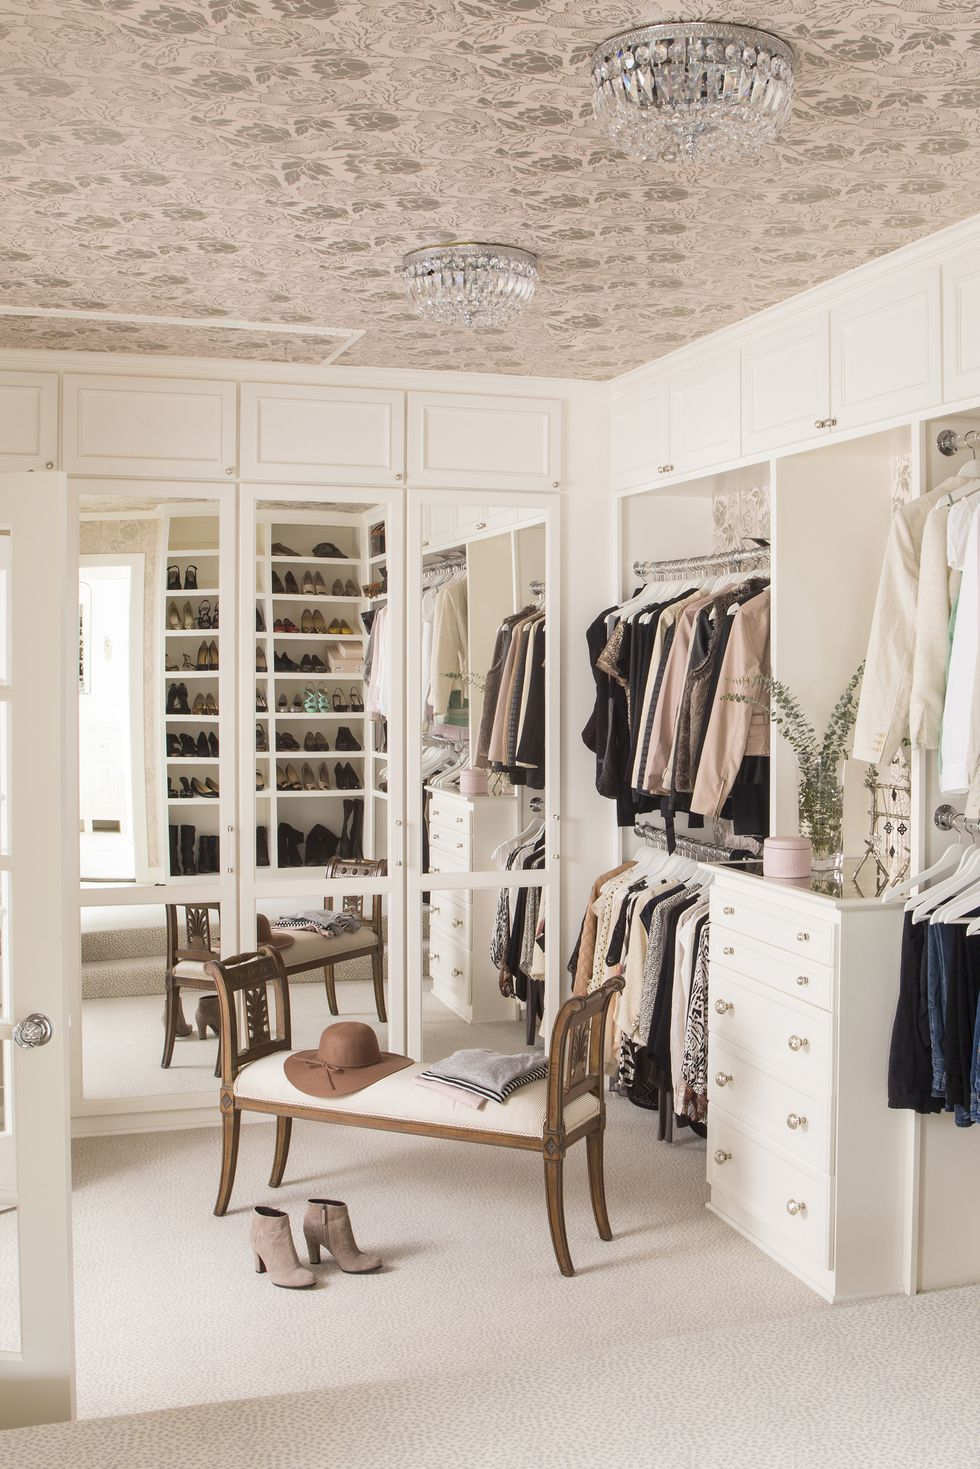 5 Luxury Closet Decor Ideas 03